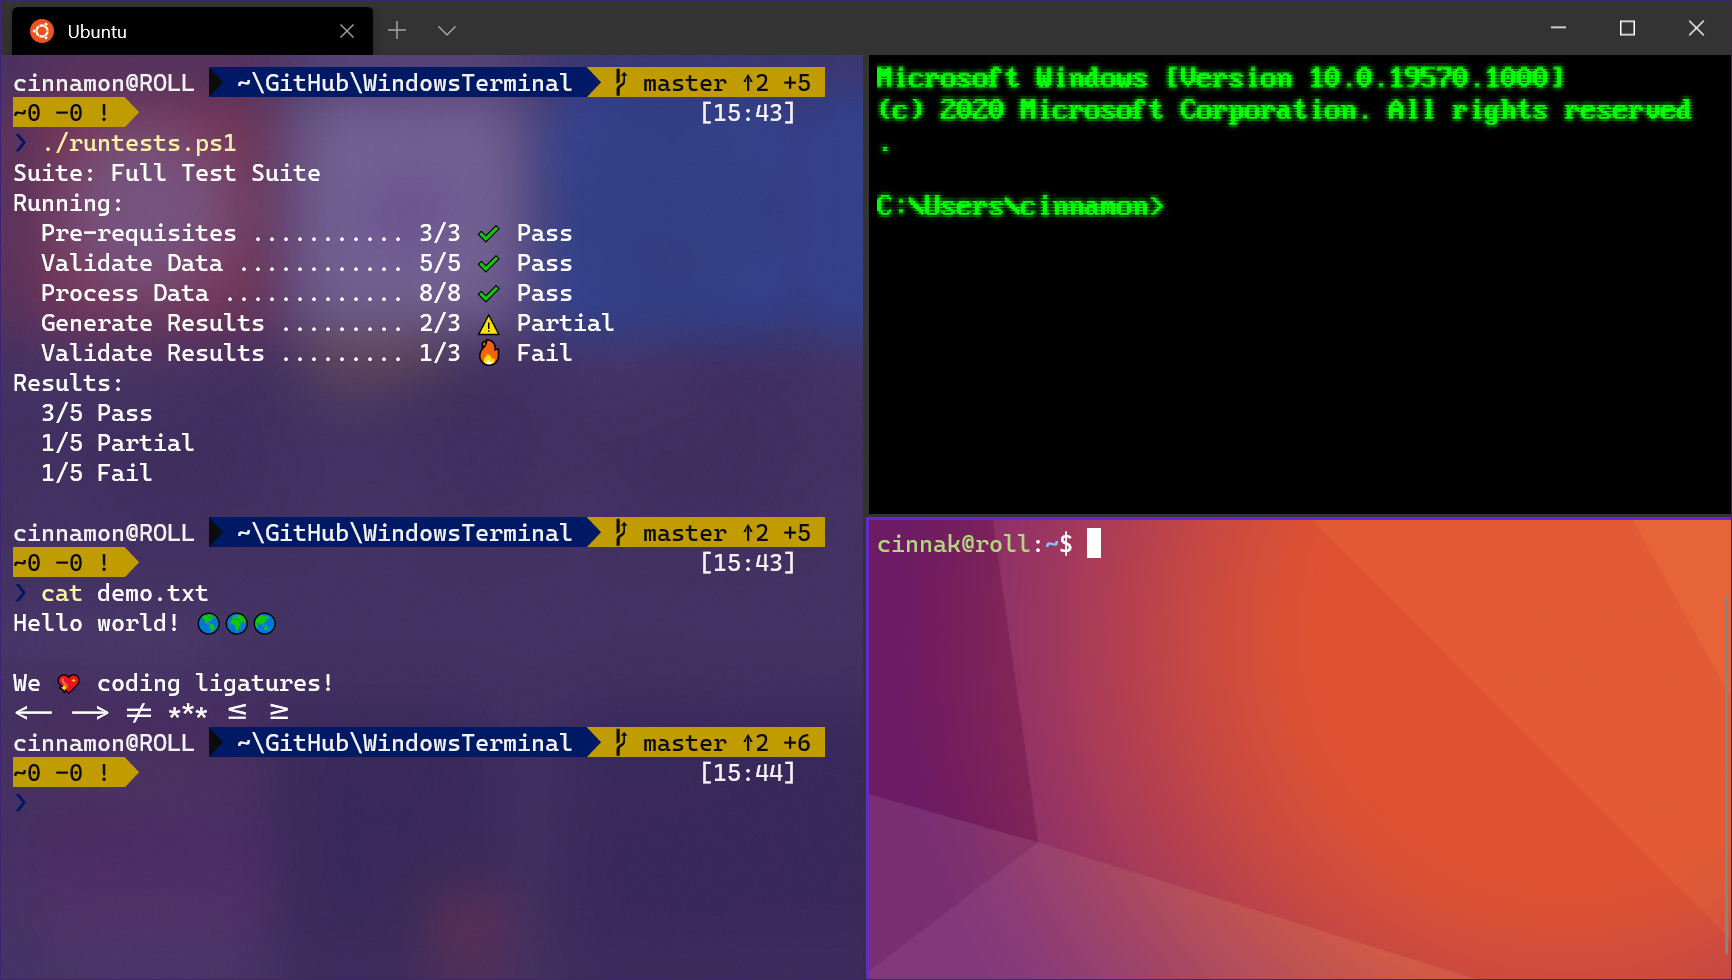 Windows Terminal showing multiple panes supporting different command line applications